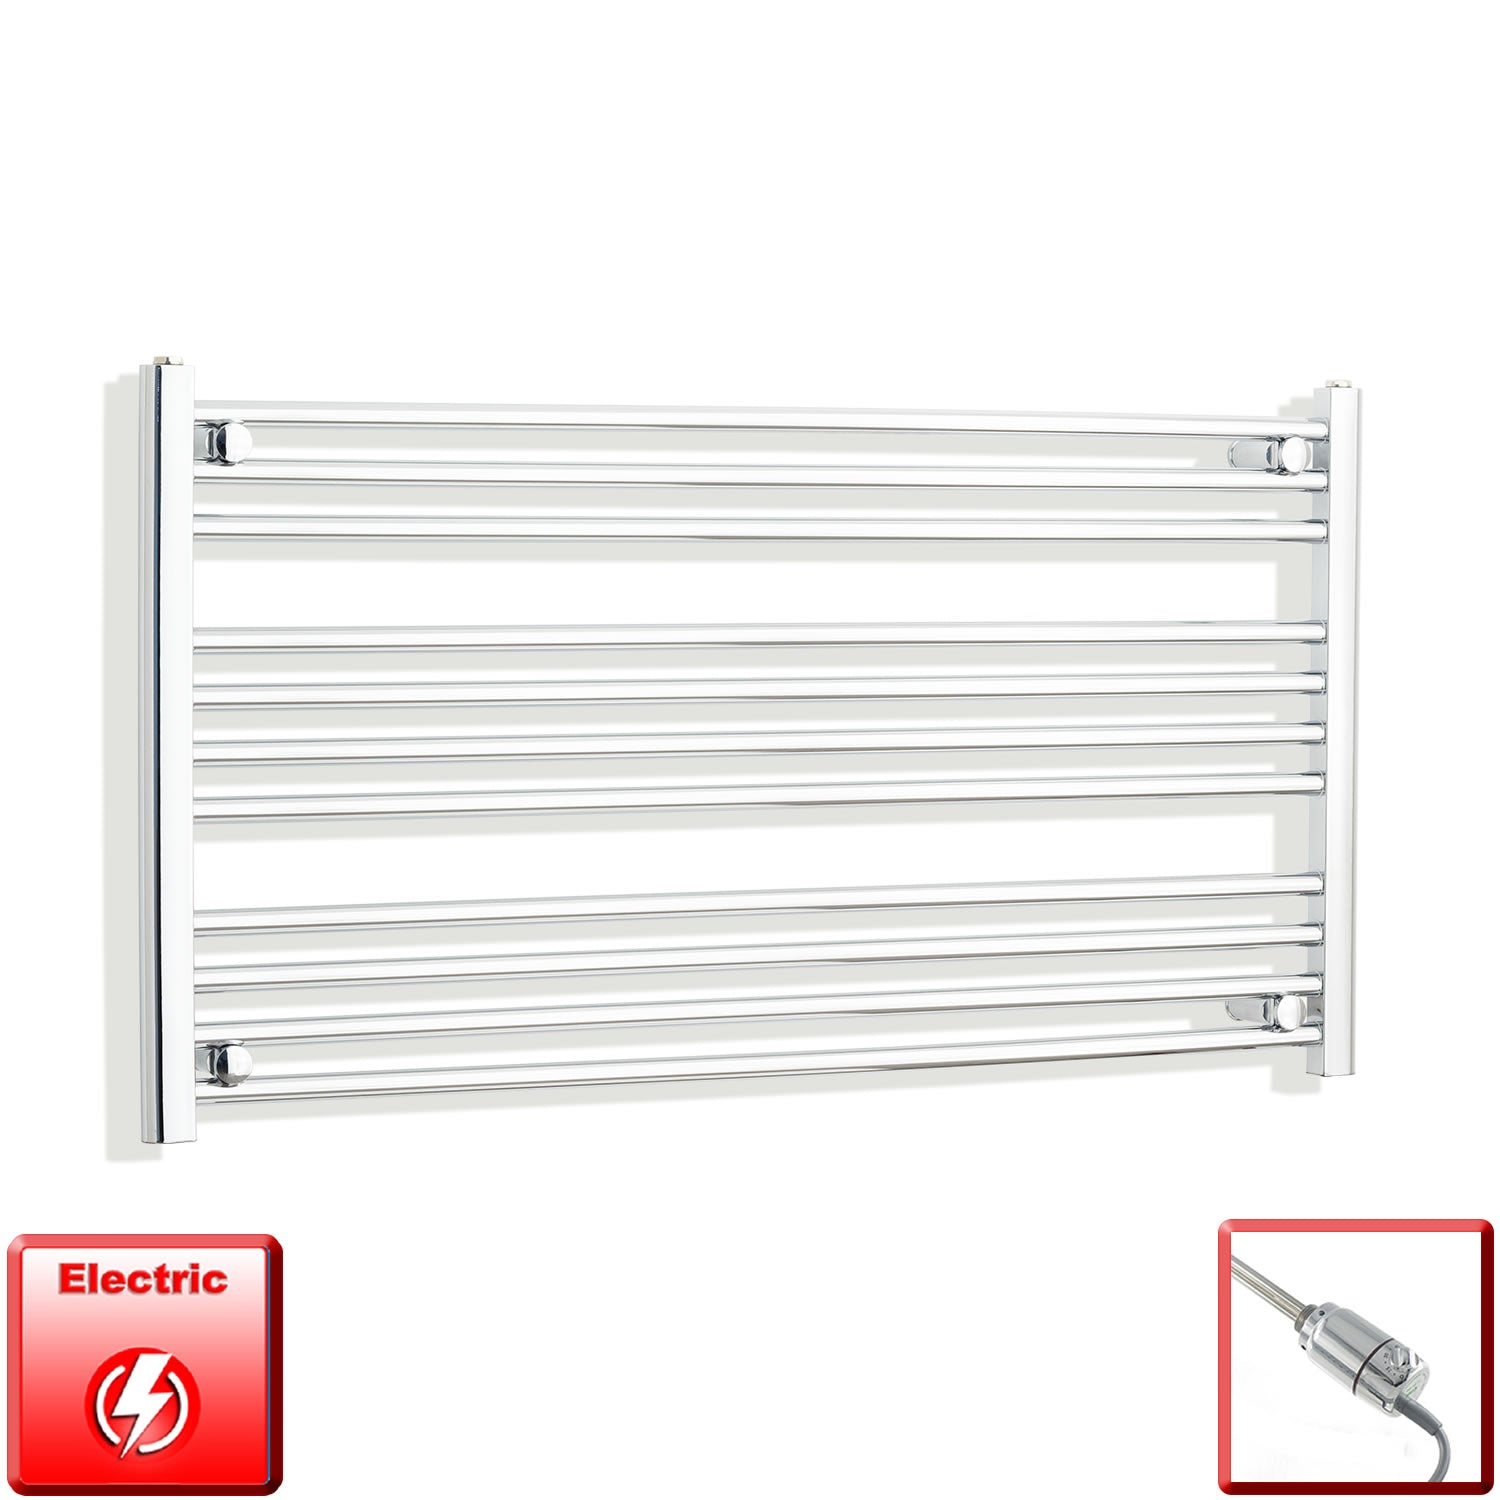 1300mm Wide 600mm High Flat Chrome Pre-Filled Electric Heated Towel Rail Radiator HTR,GT Thermostatic